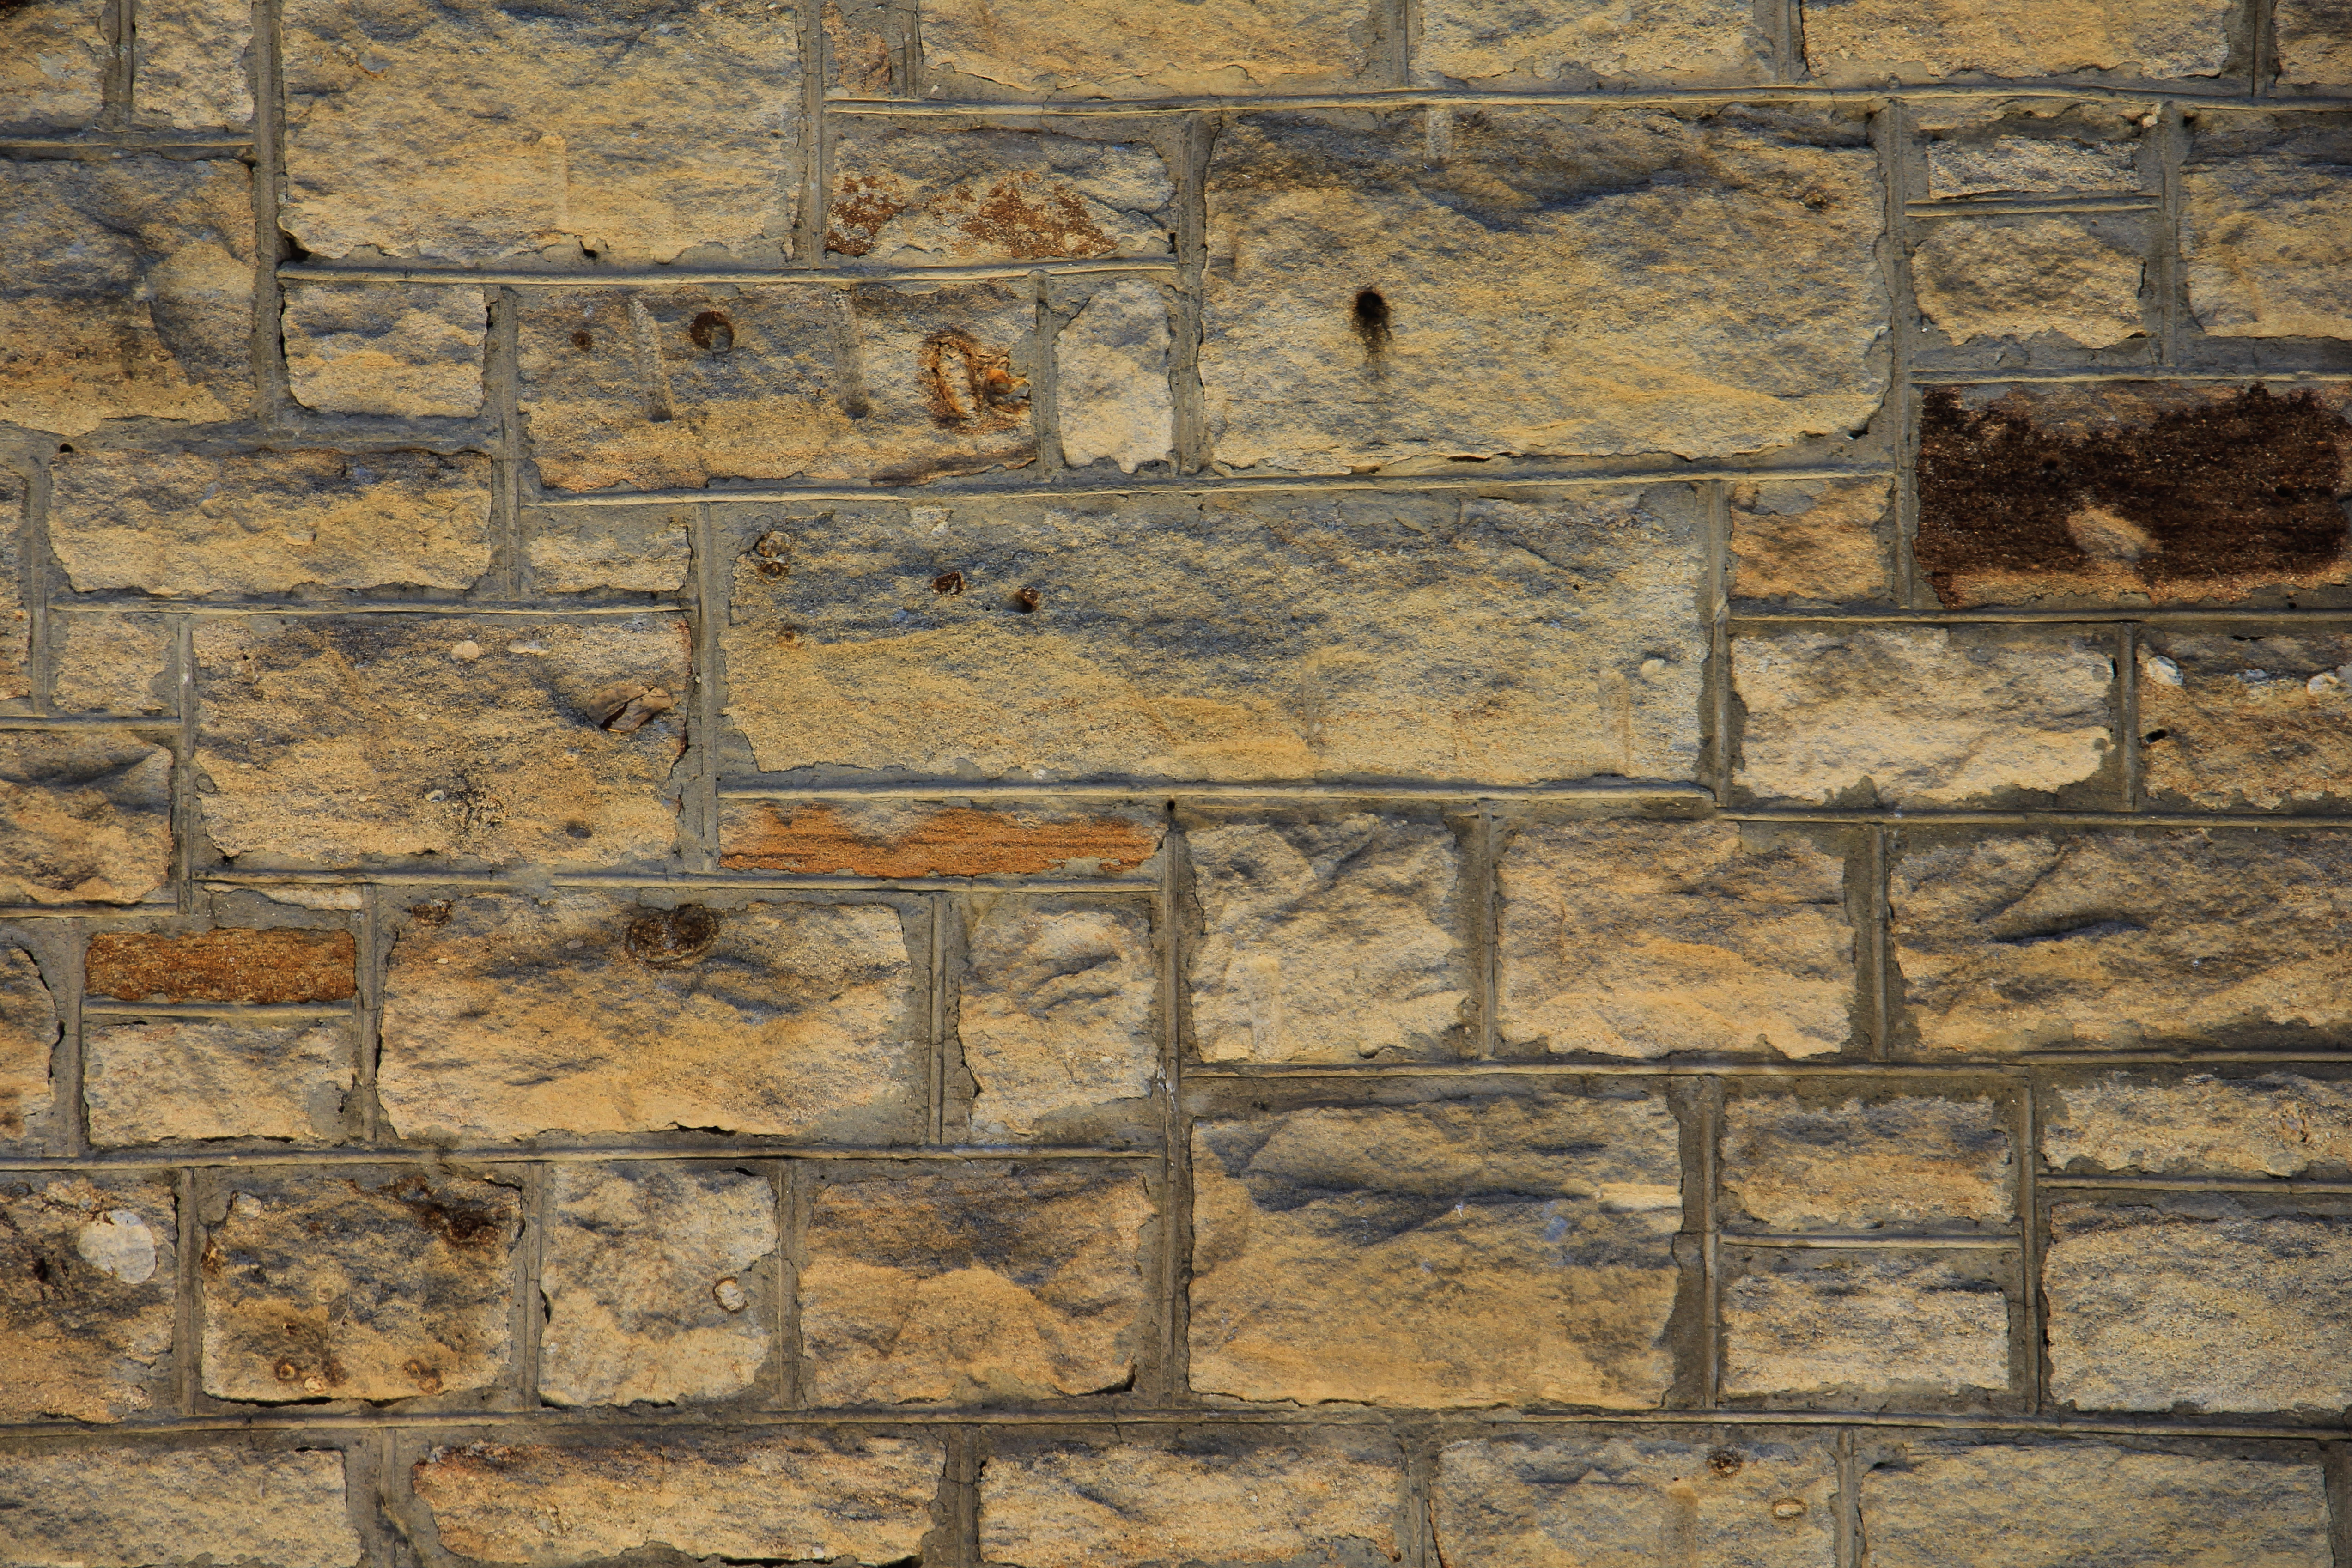 Rough Stone Block Texture : Wall texture brick yellow block stone rough surface photo